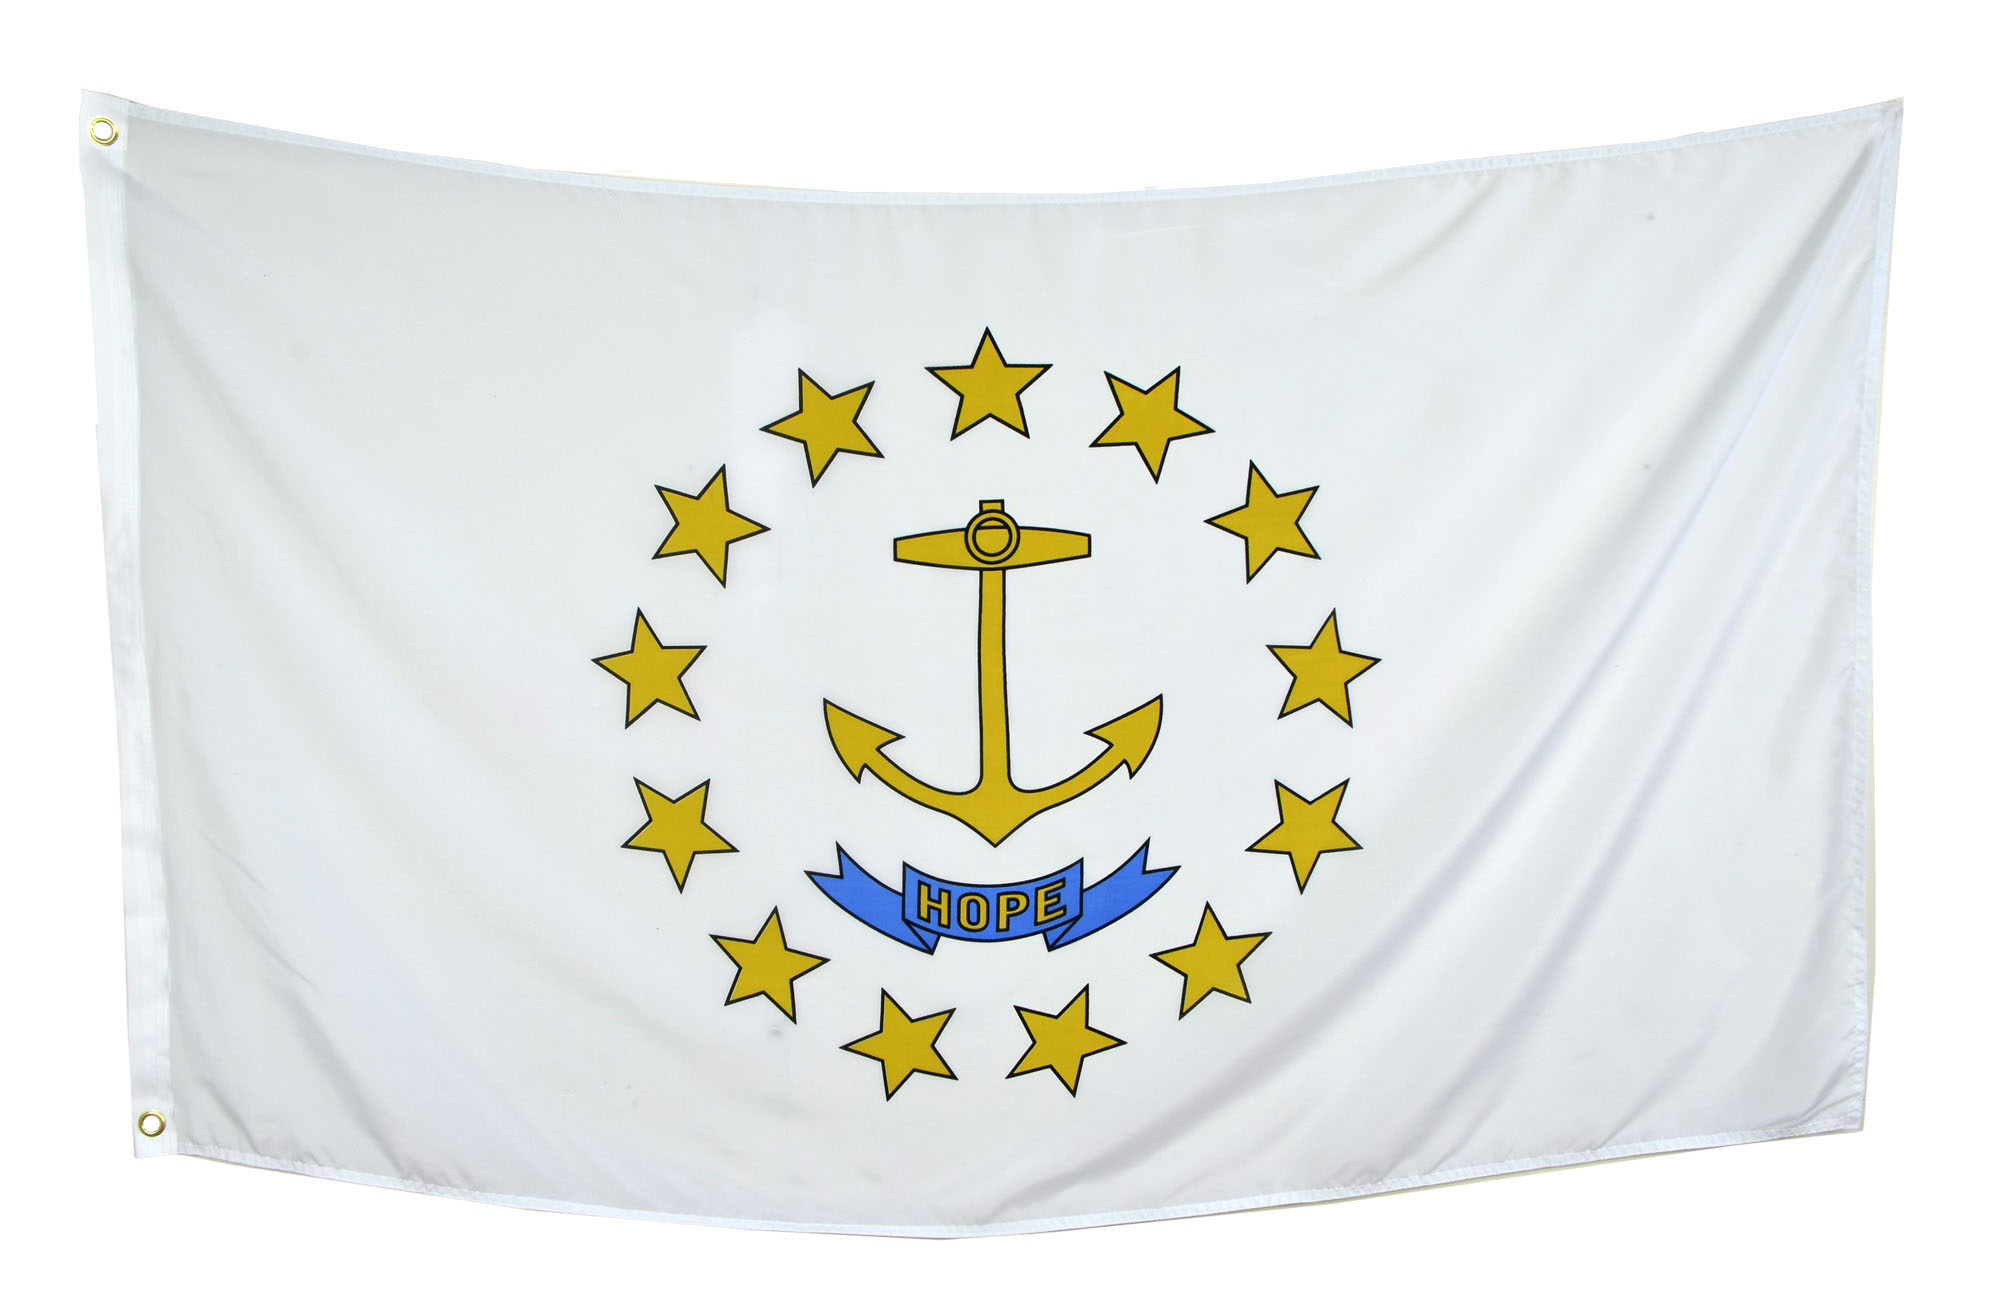 Shop72 US Rhode Island State Flags - Rhode Island Flag - 3x5' Flag from Sturdy 100D Polyester